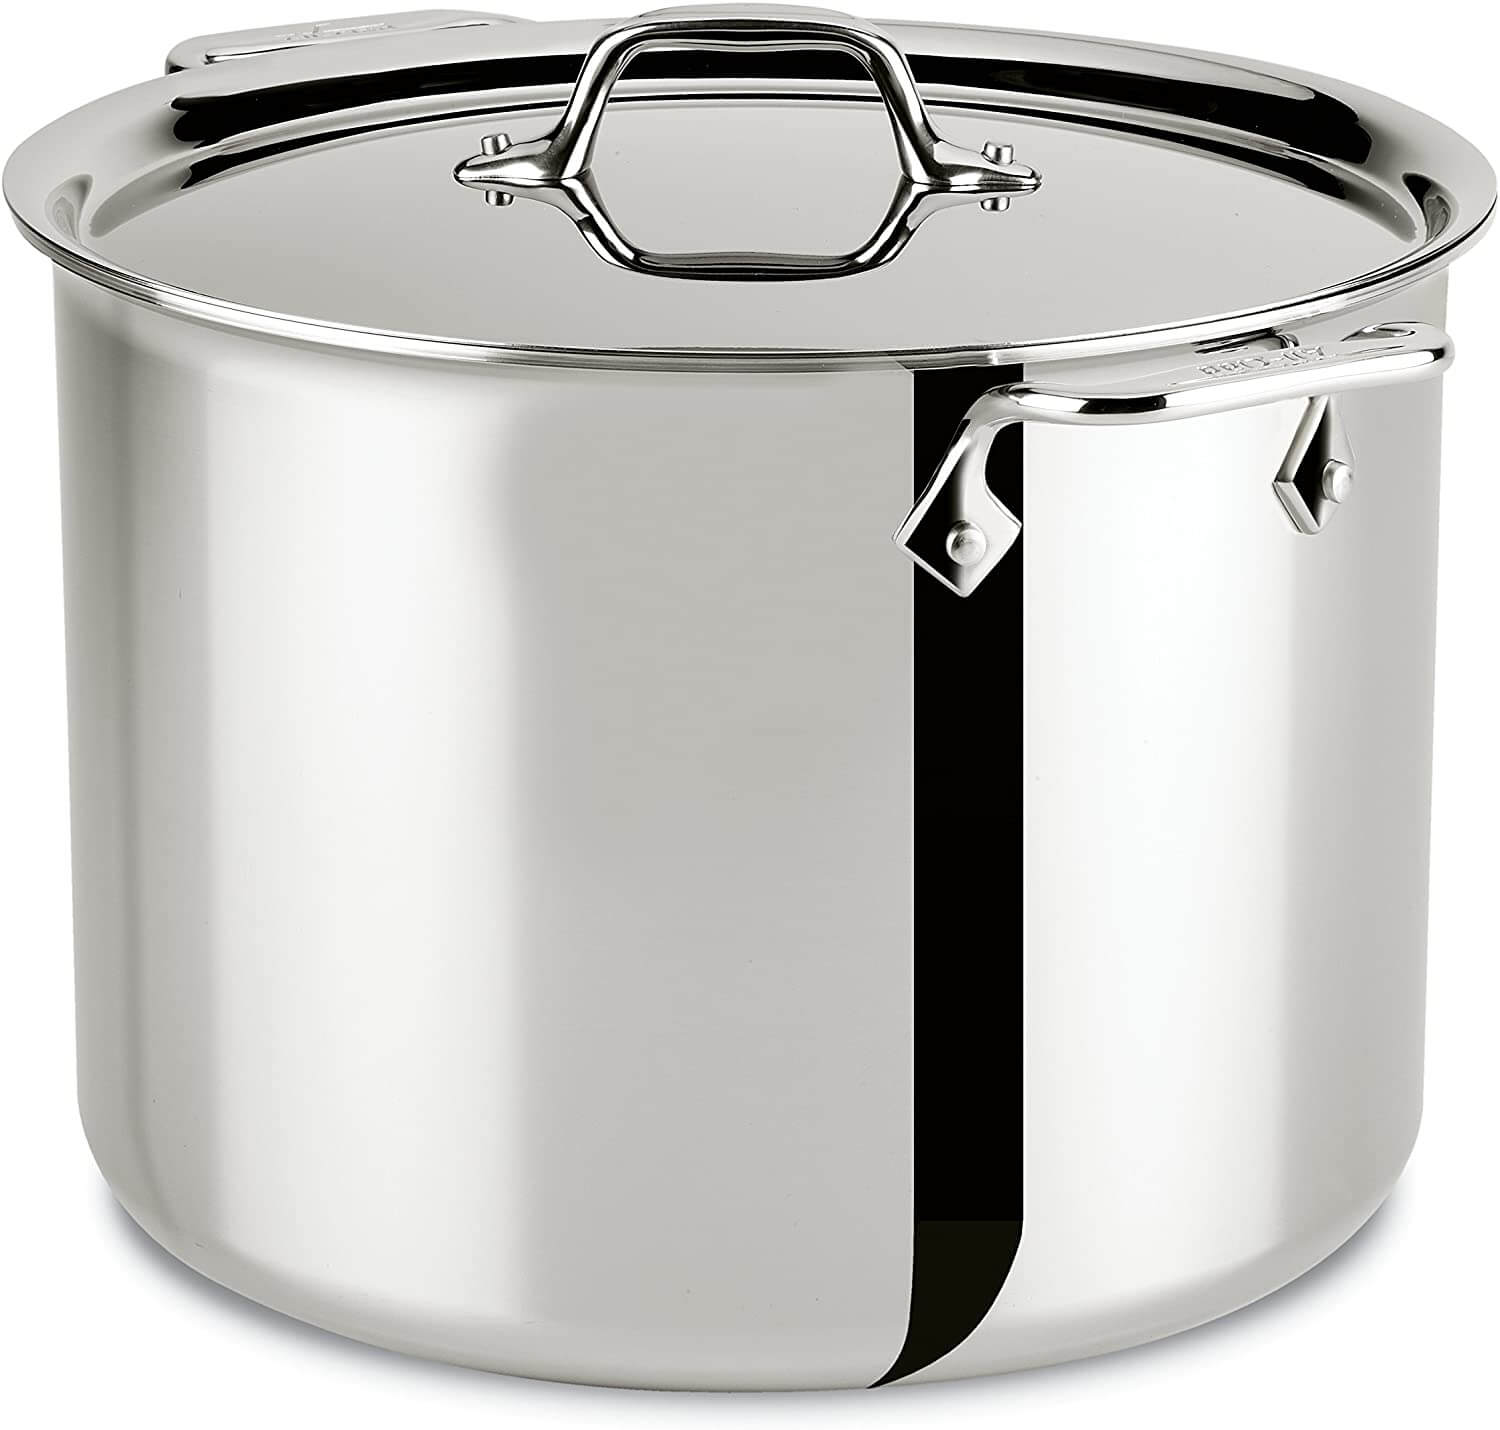 All-Clad 4512 Stainless Steel Tri-Ply Bonded Dishwasher Safe Stockpot